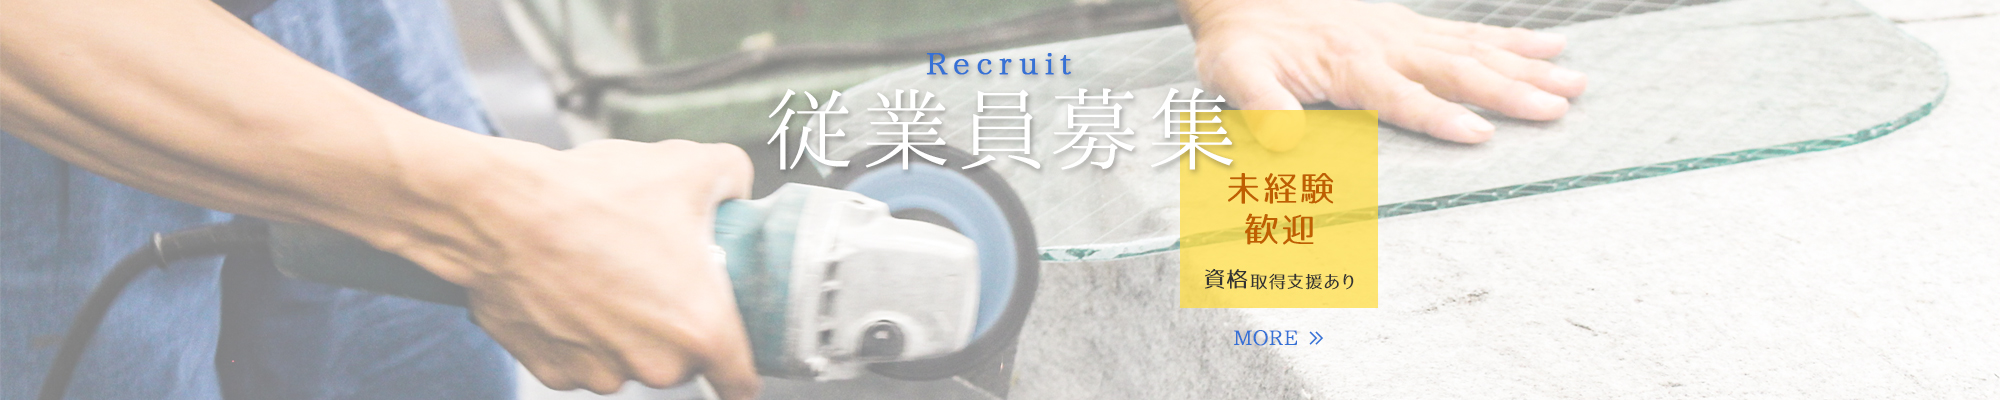 banner_recruit